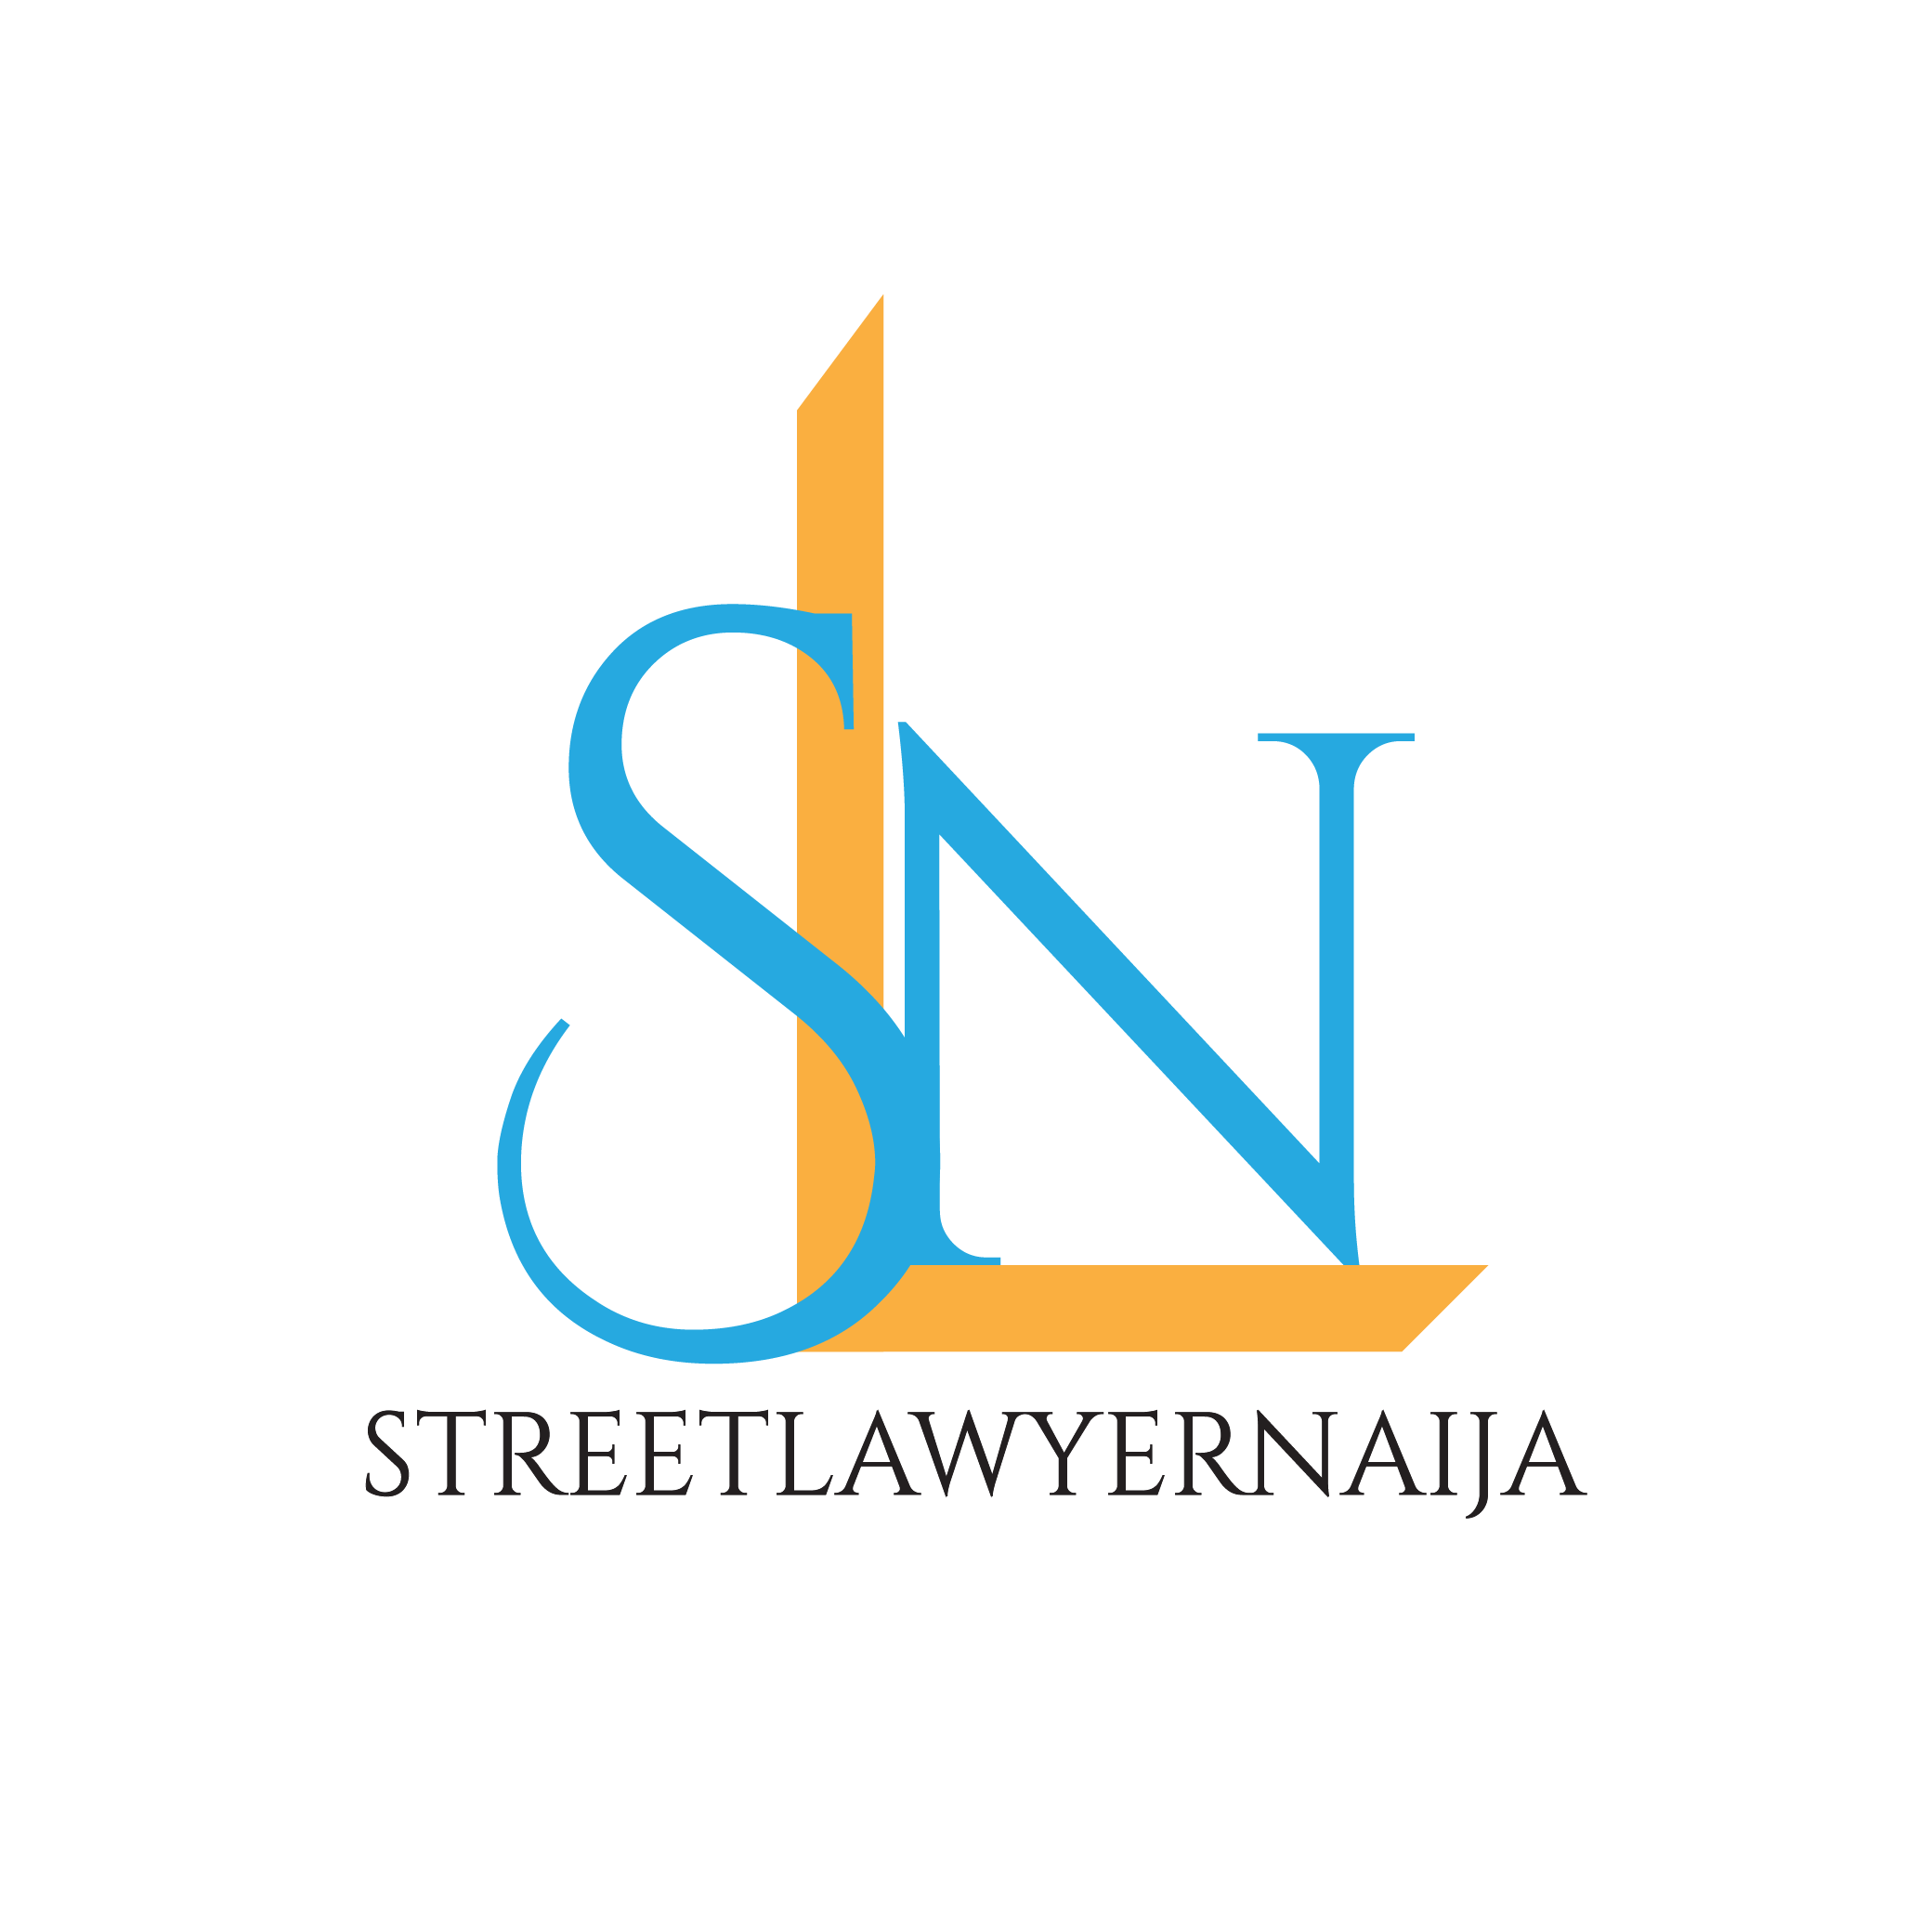 The Street Lawyers